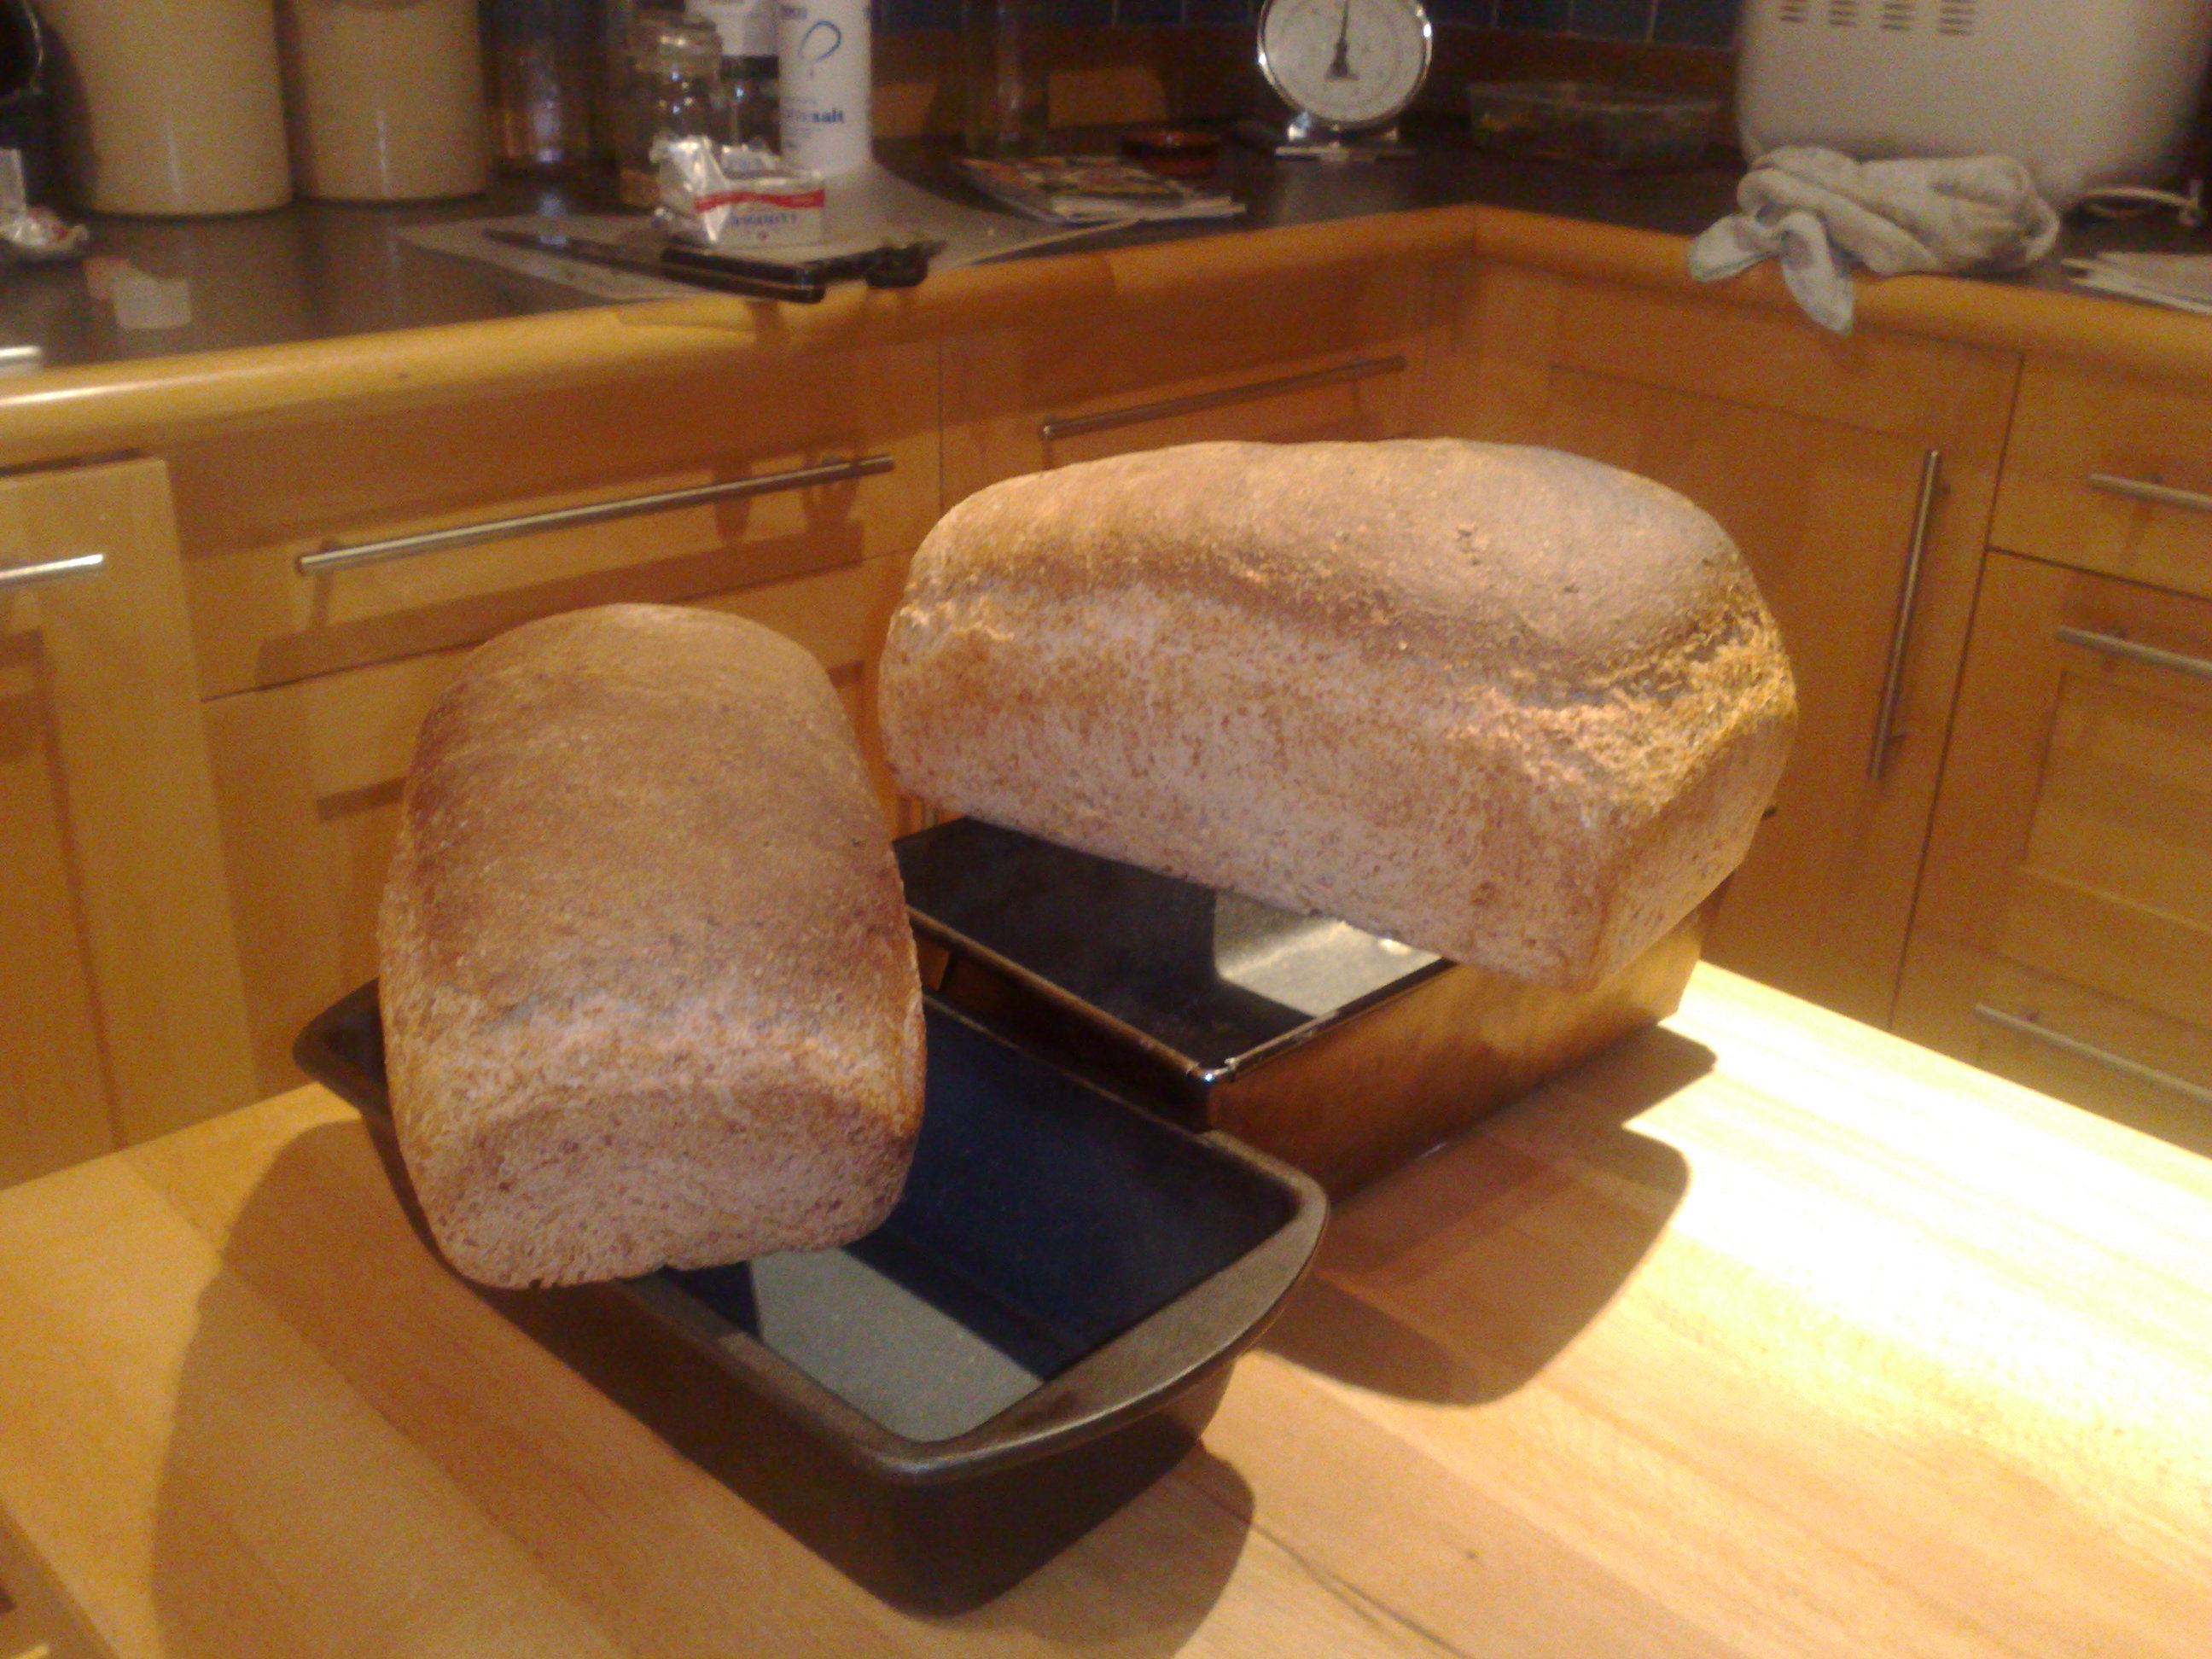 Bread safely out of the oven, and out of the tin.